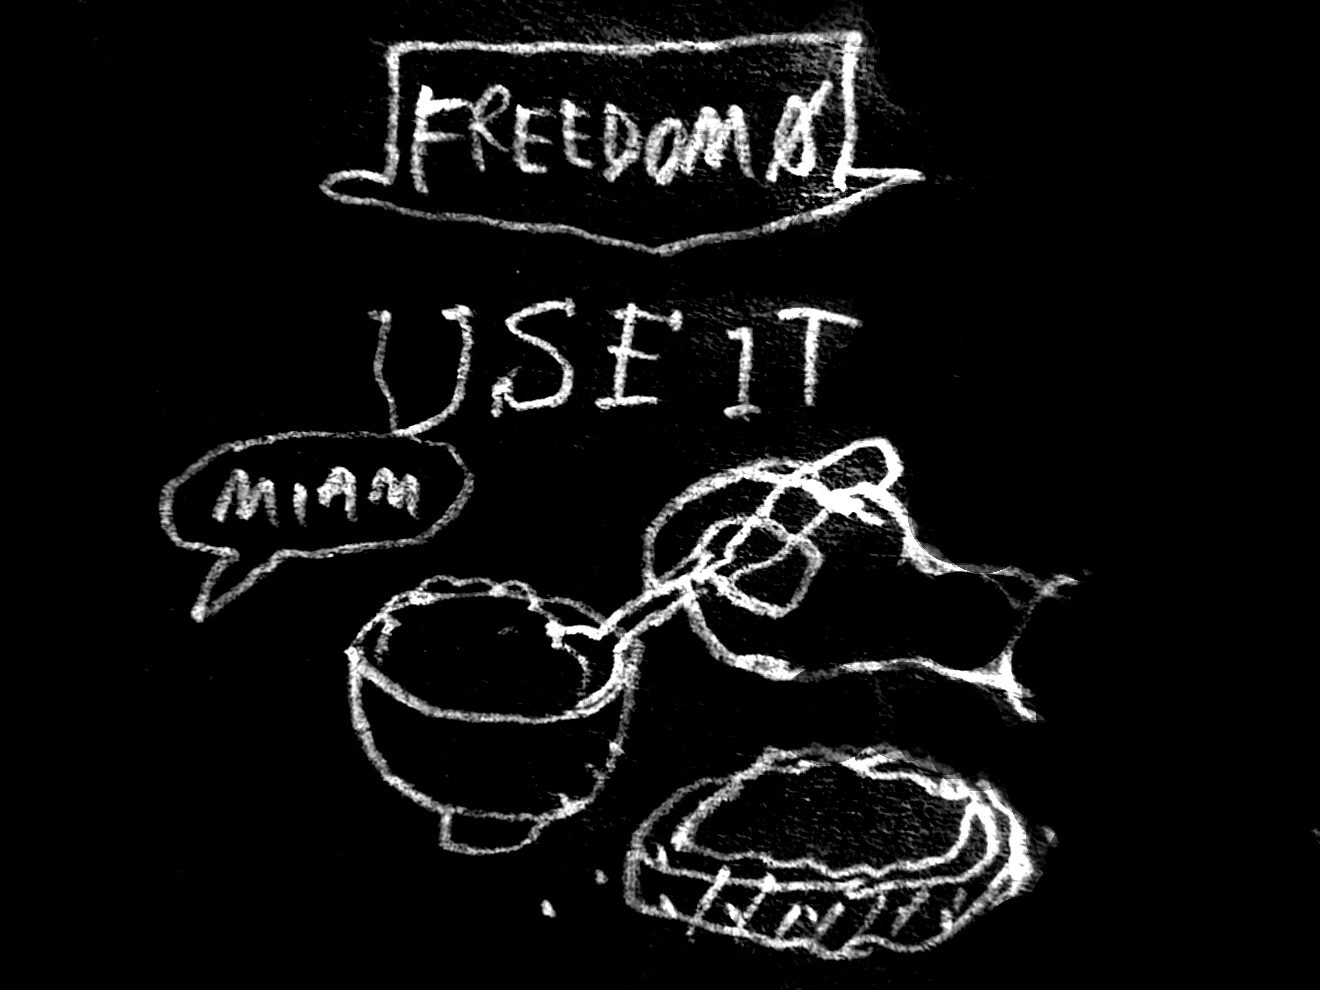 Freedom 0 - use it